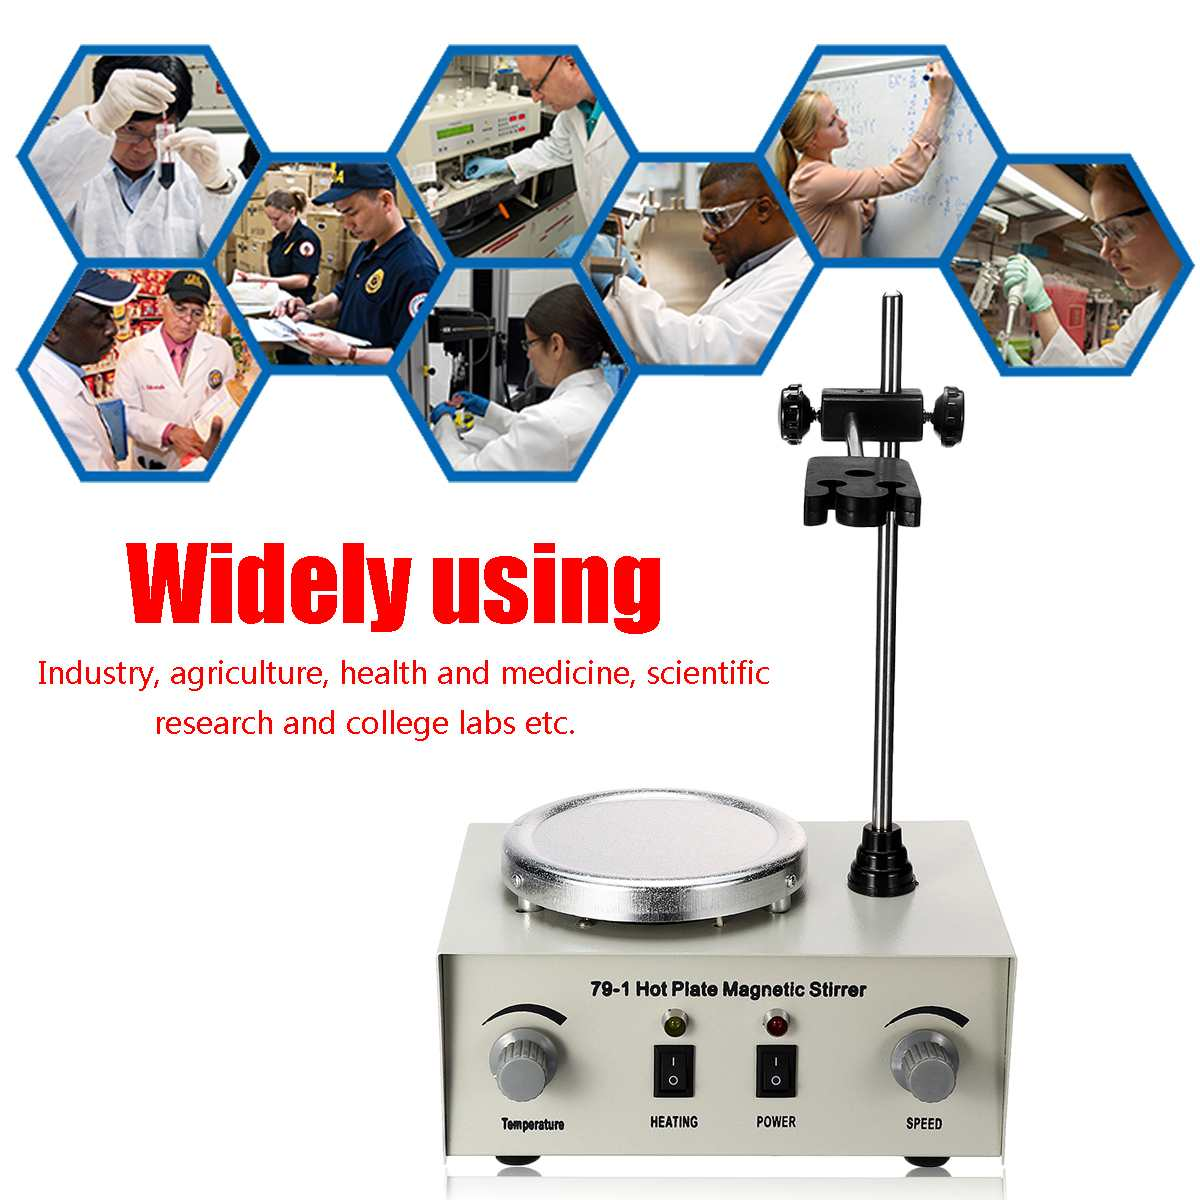 79-1 Hot Plate Magnetic Stirrer Magnetic Mixer 1000ml Lab Heating Dual Control Mixer Vibration Fuses Protection 110/220V 250W